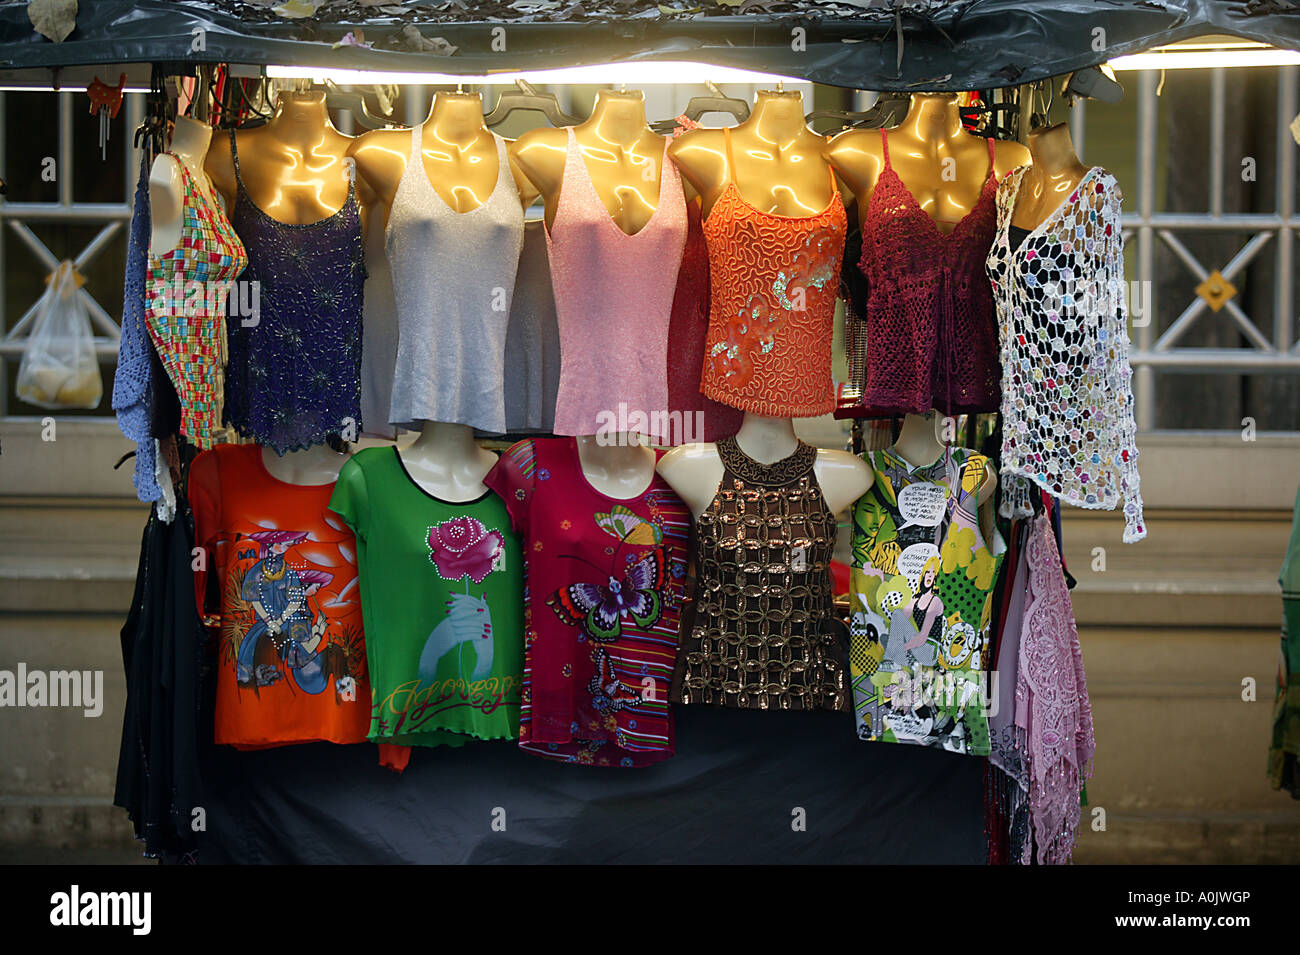 9c3c9015f0 Ladies tops for sale on a stall in Bangkok Thailand Stock Photo ...